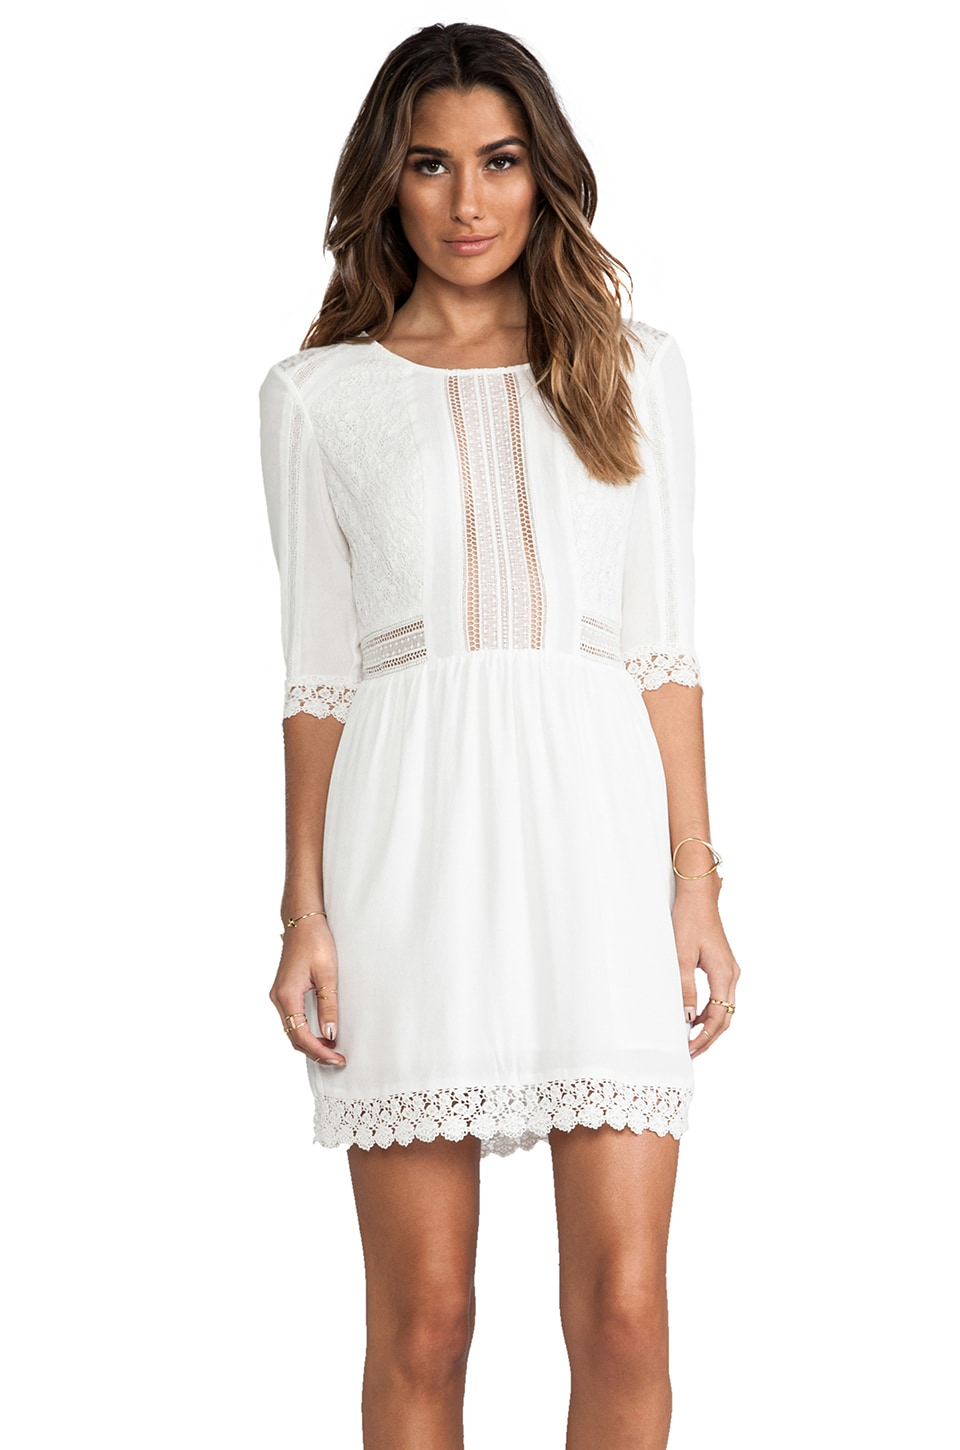 heartLoom Aimee Dress in White